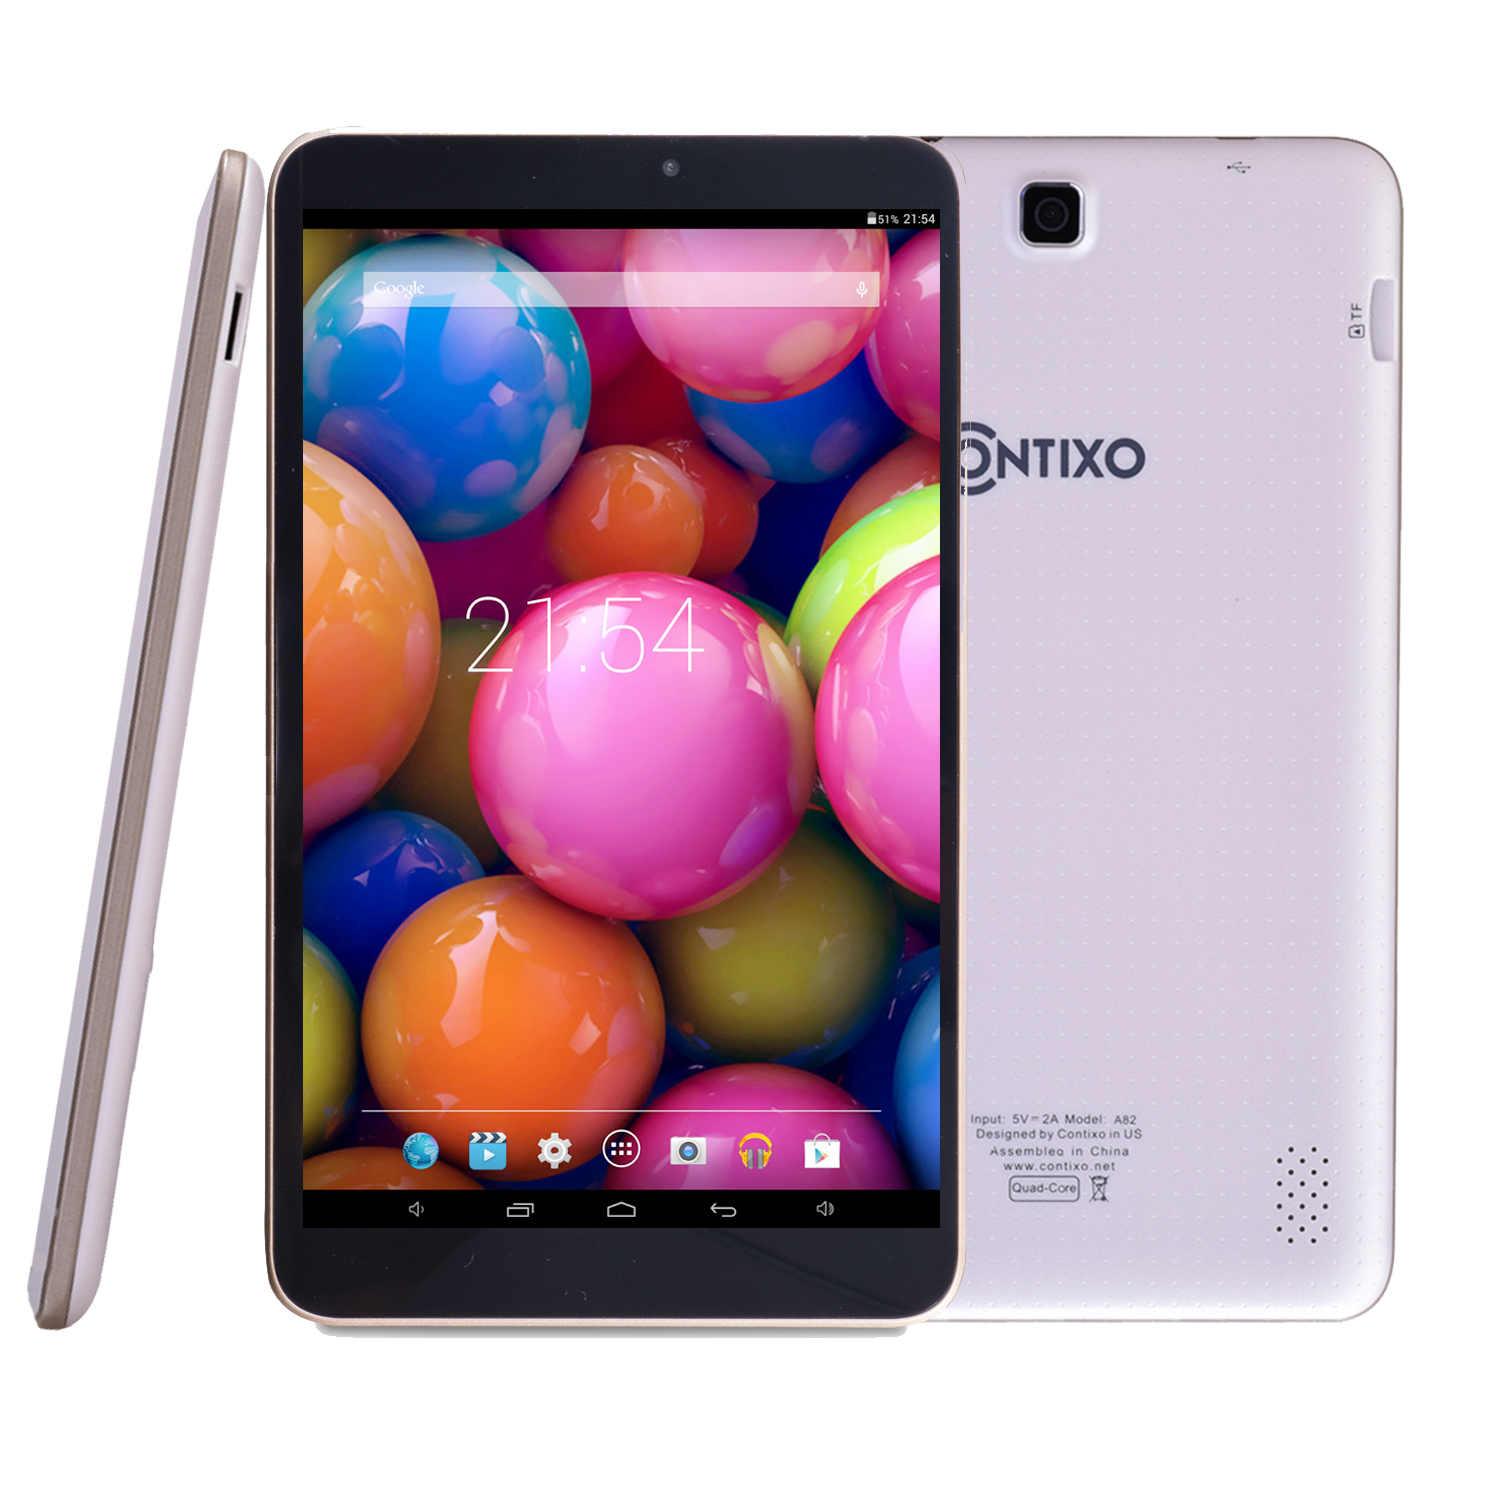 Contixo 8'' Quad Core Android 4.4 Tablet, IPS Screen 1280x800 Display, 1GB Memory, 8GB Nand Flash, Wi-Fi, Bluetooth (White)